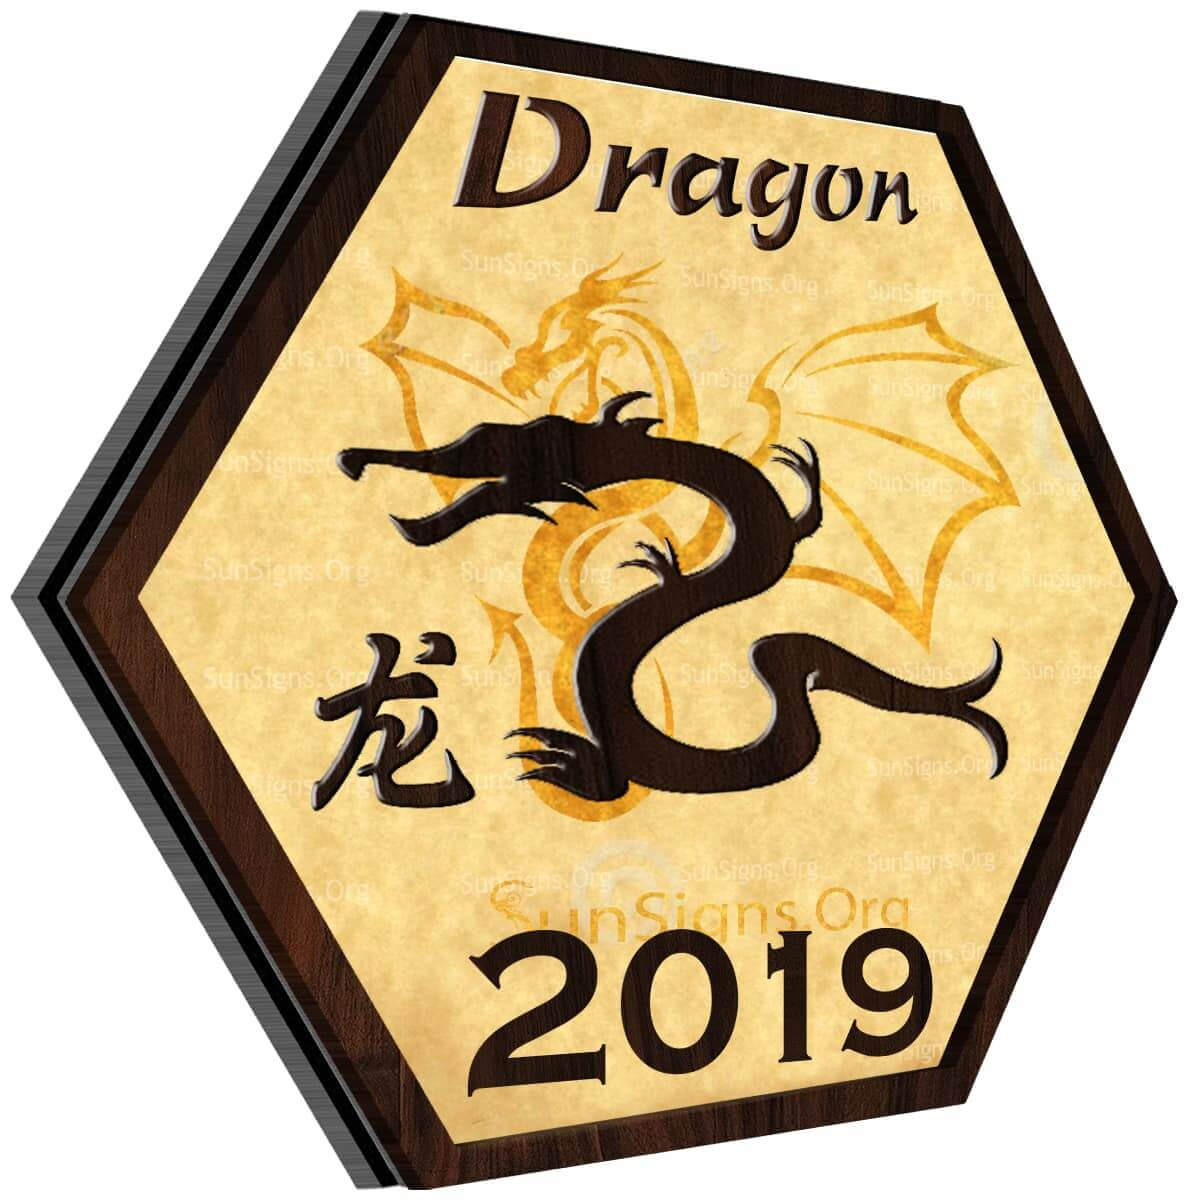 Dragon Horoscope 2019 Predictions For Love, Finance, Career, Health And Family